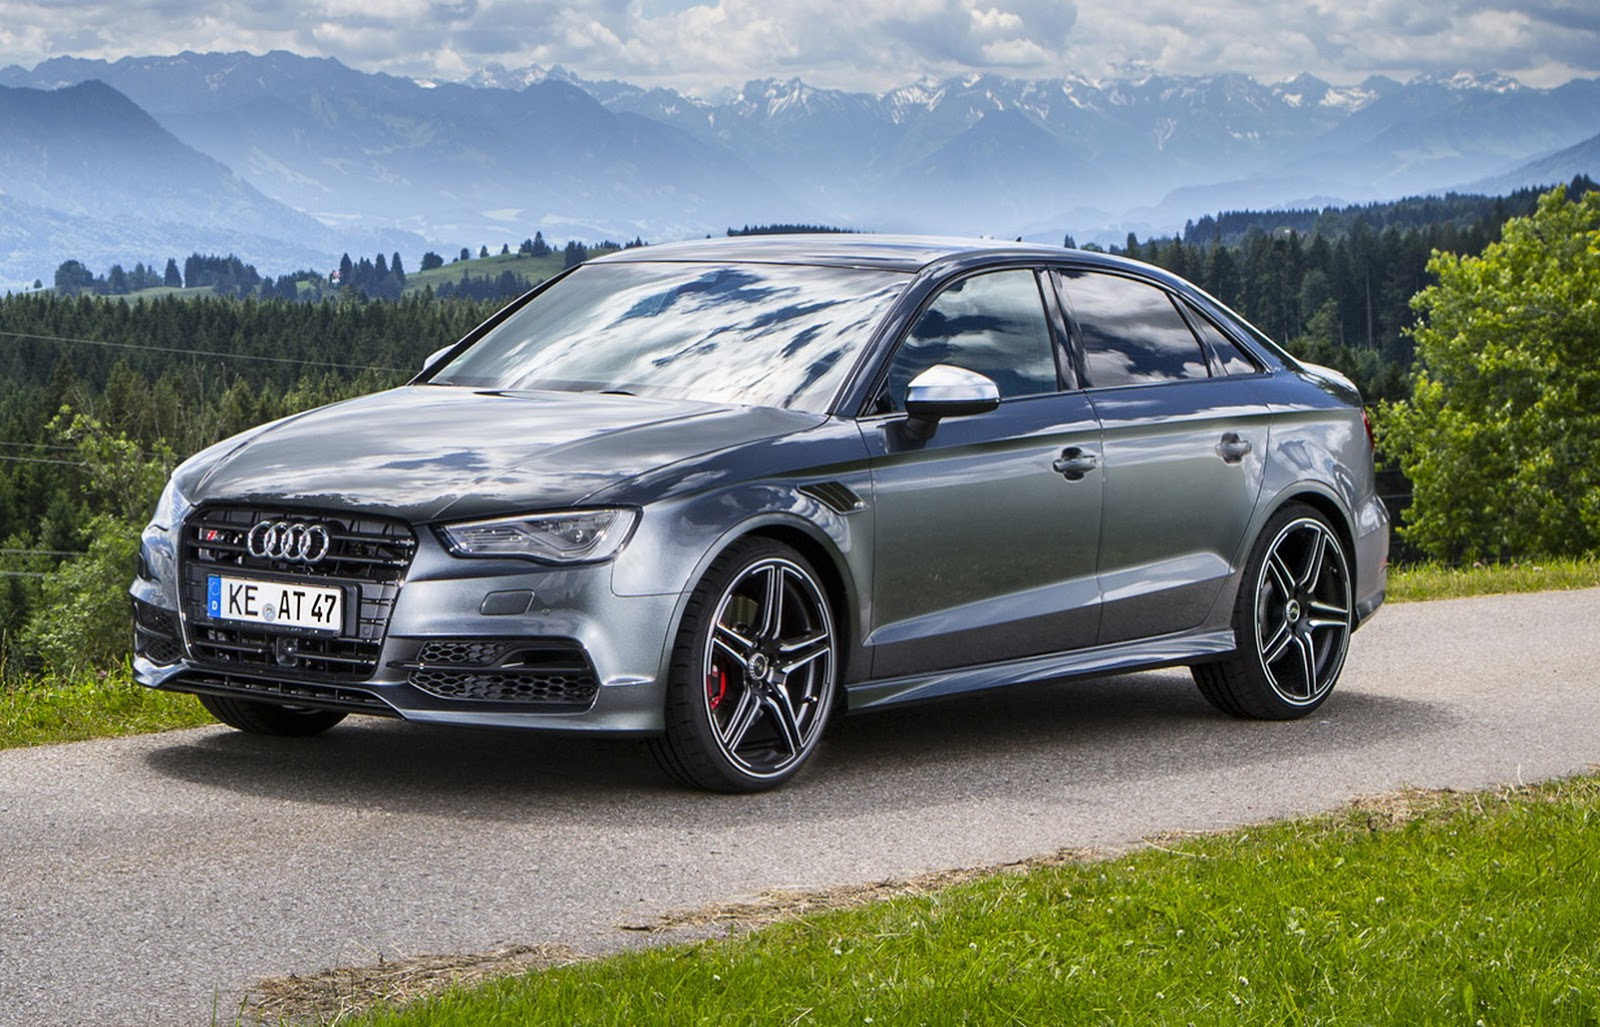 Abt Gives Audi S3 Sedan More Power Than Rs3 Carscoops